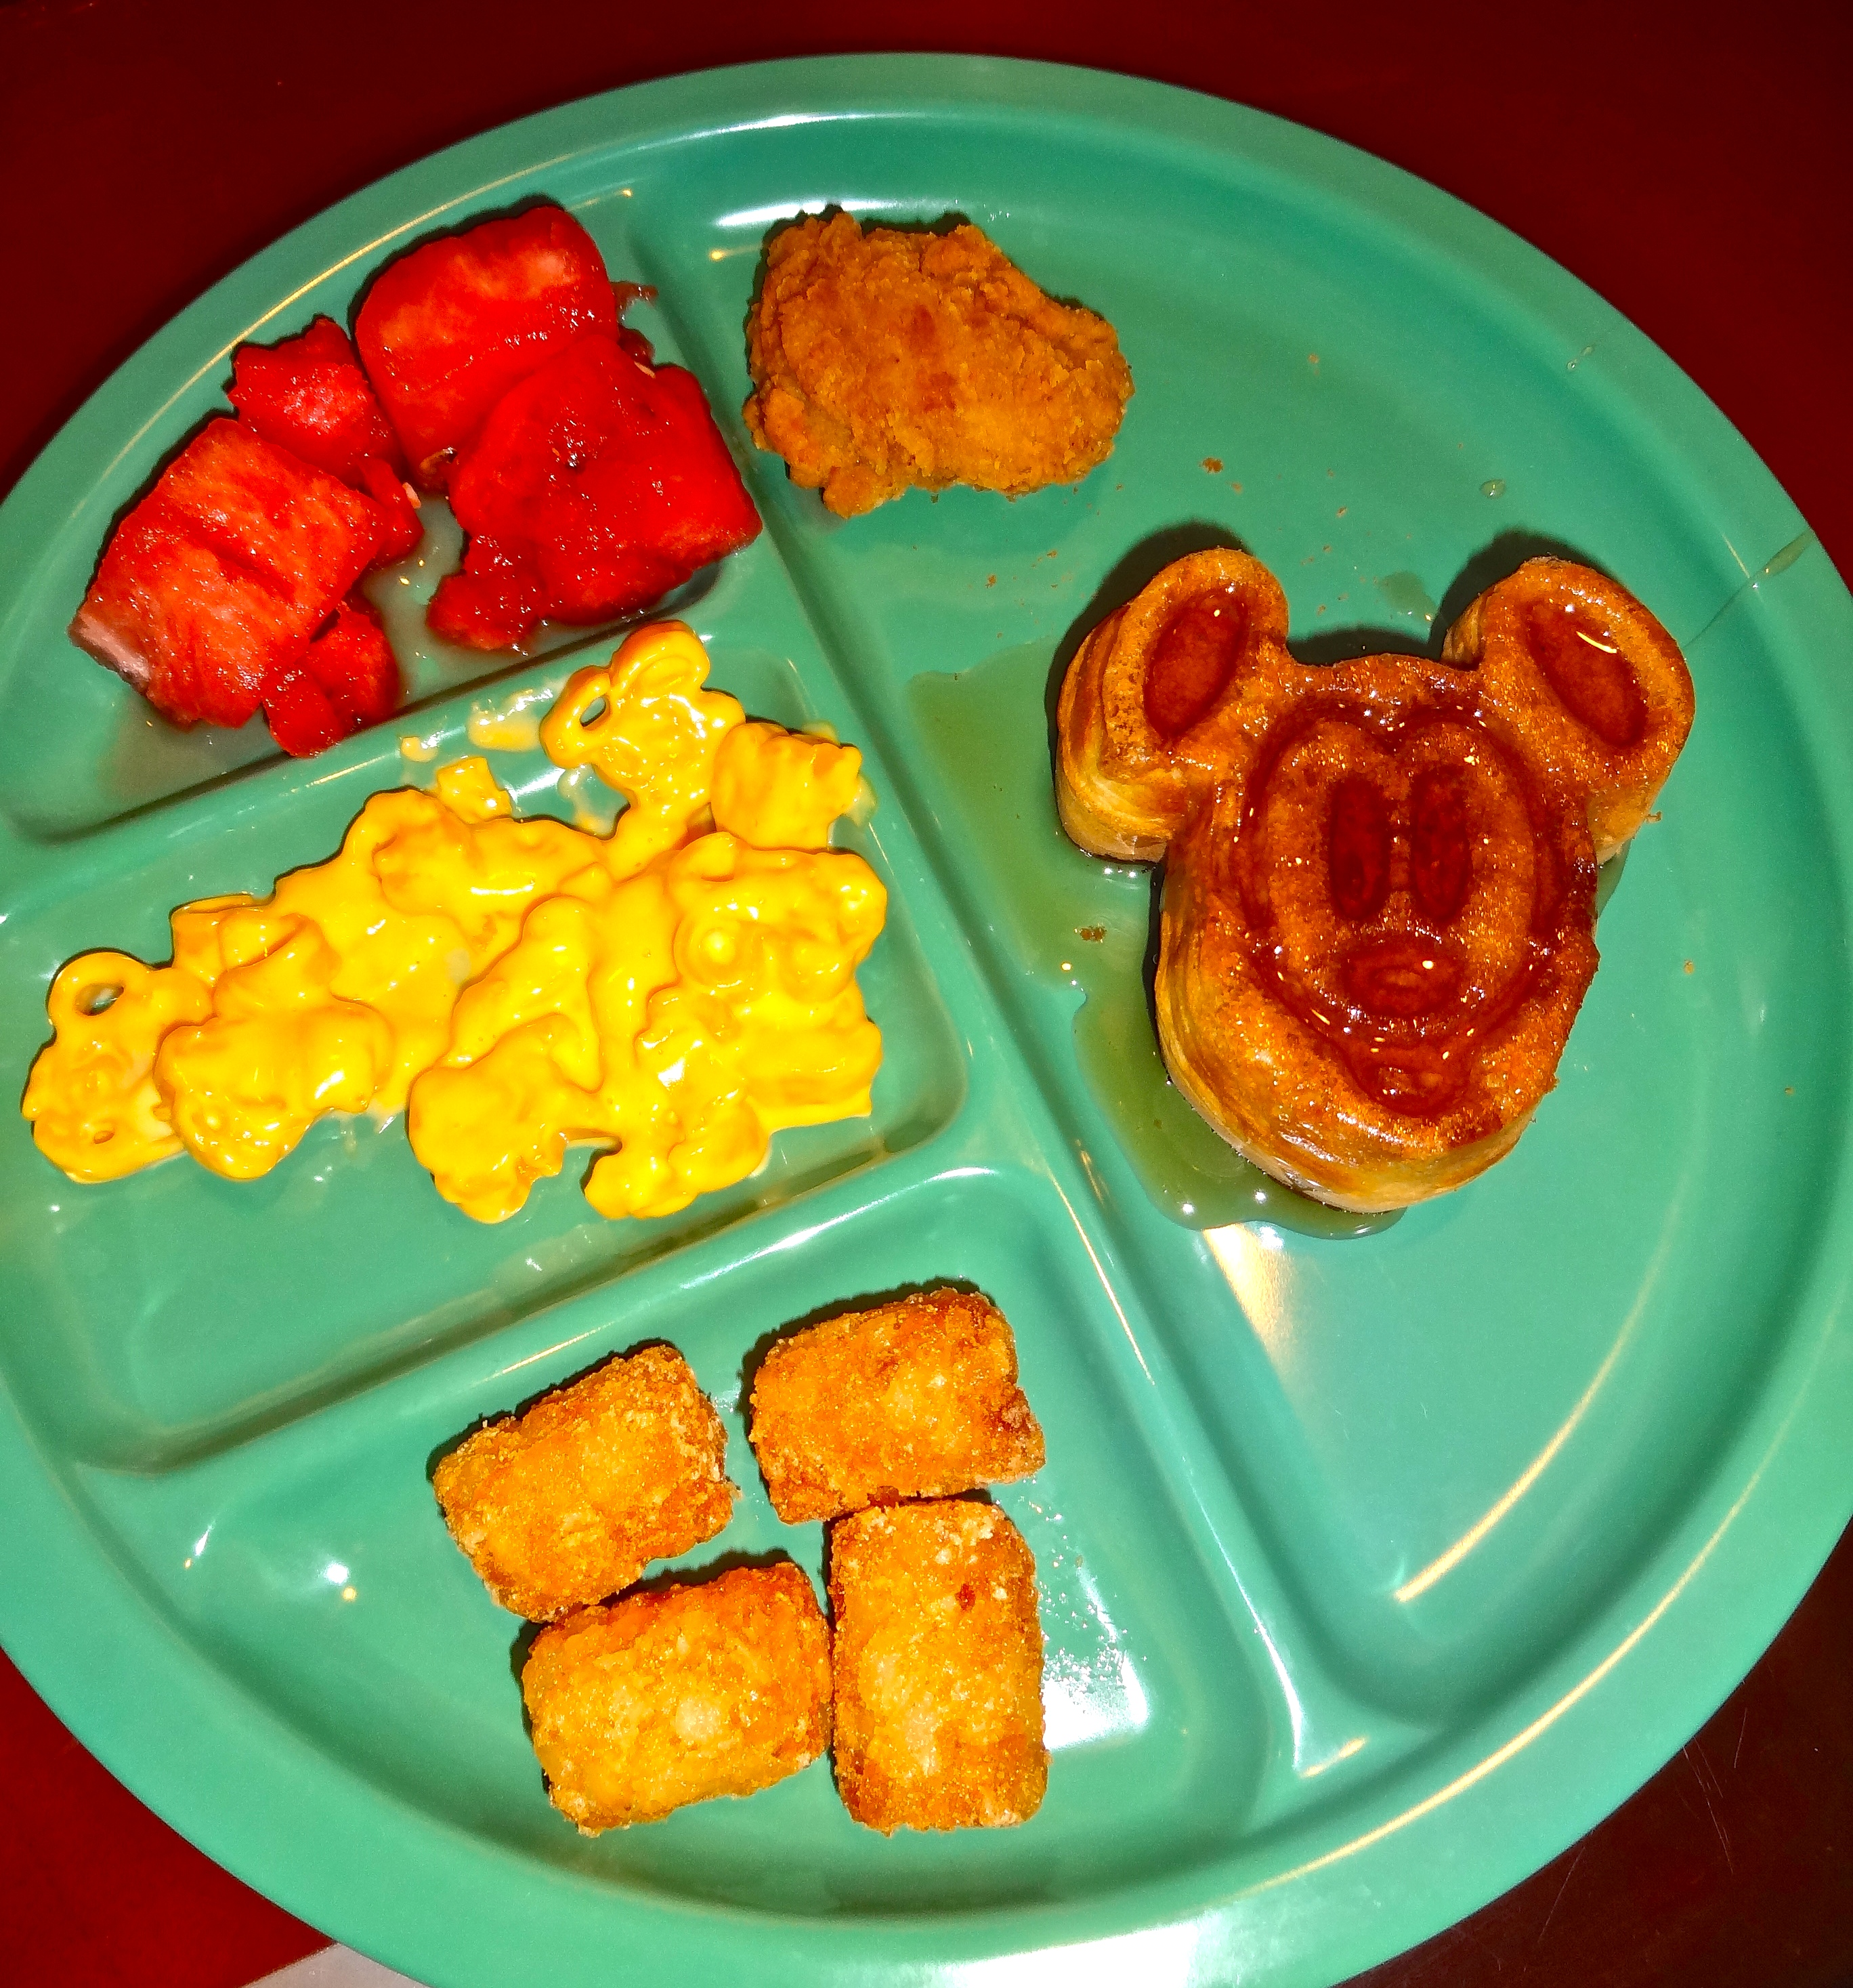 Apollo's Brunch Items from the Kids Buffet Station at Chef Mickey's